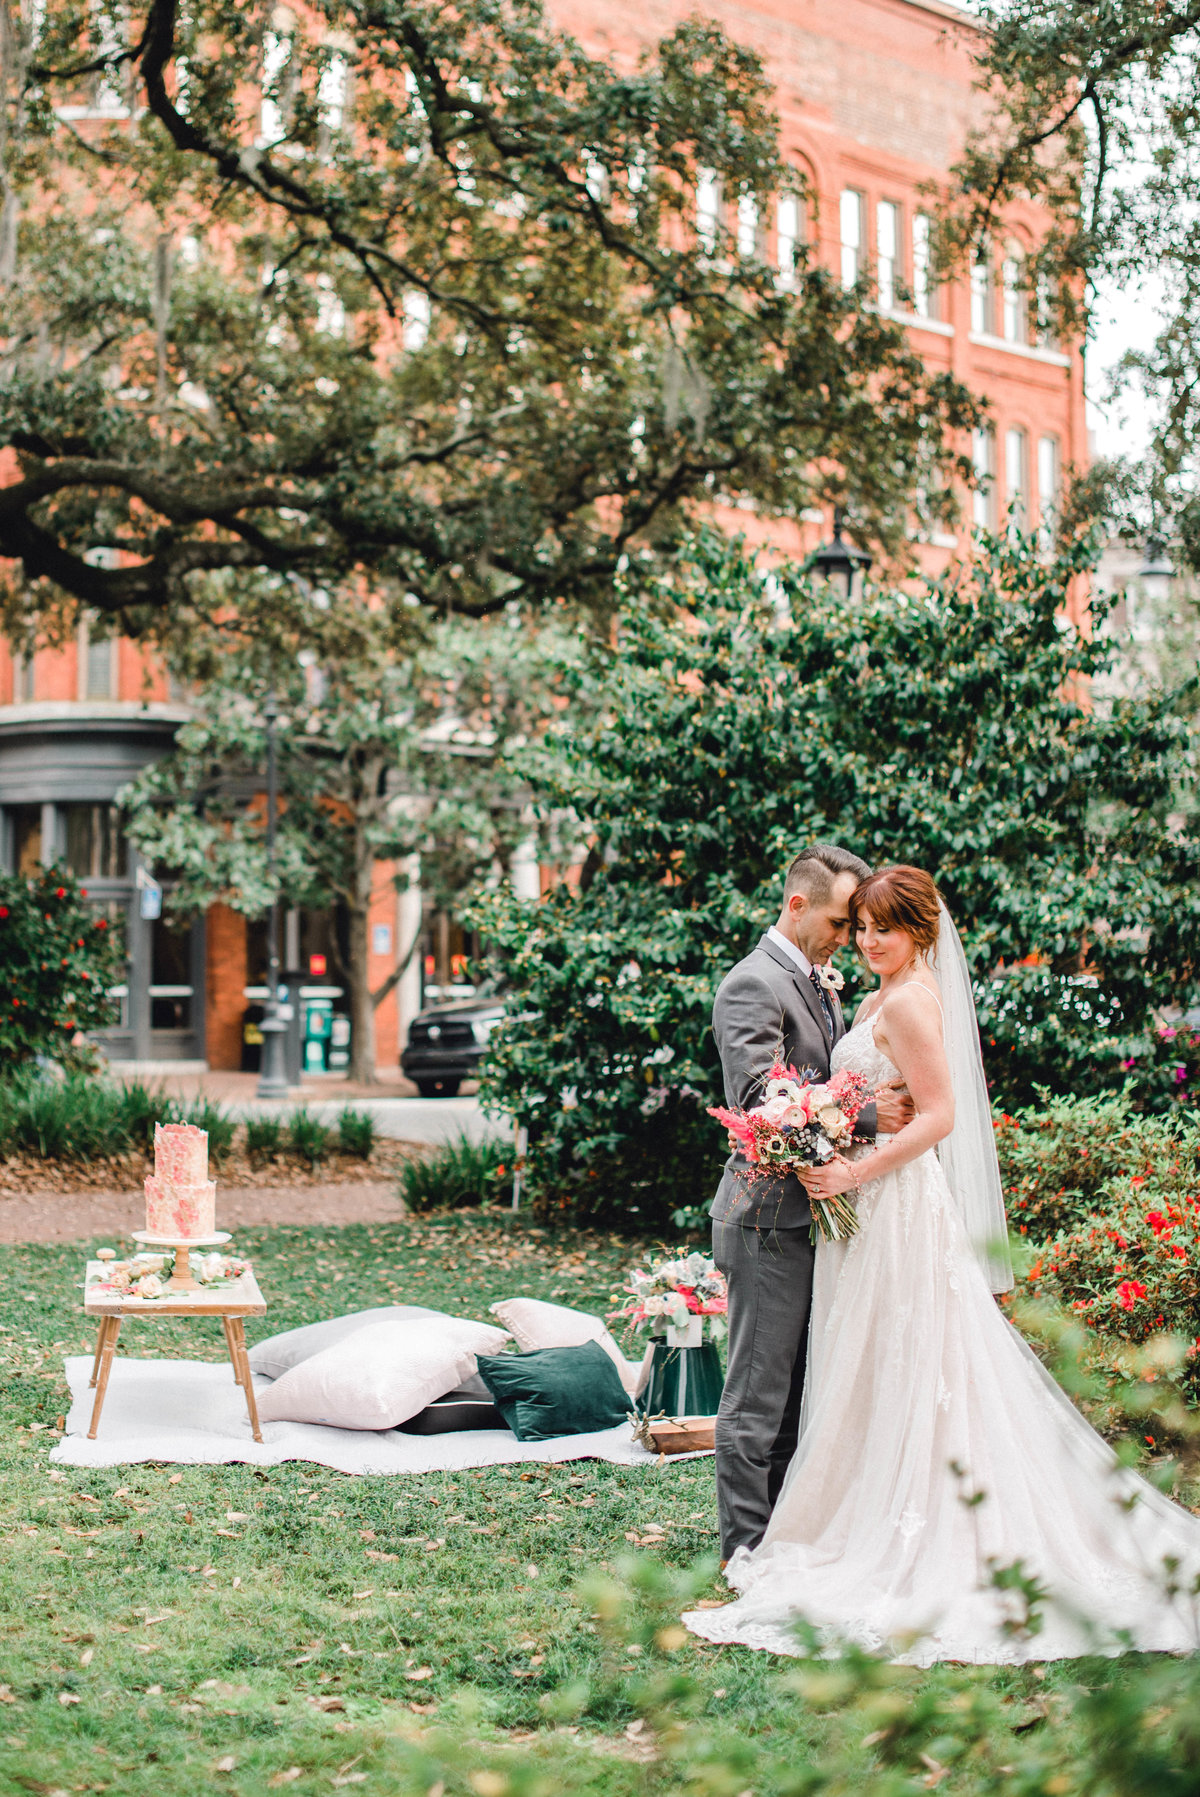 Wright Square Savannah Wedding Old town trolley spring bride and groom